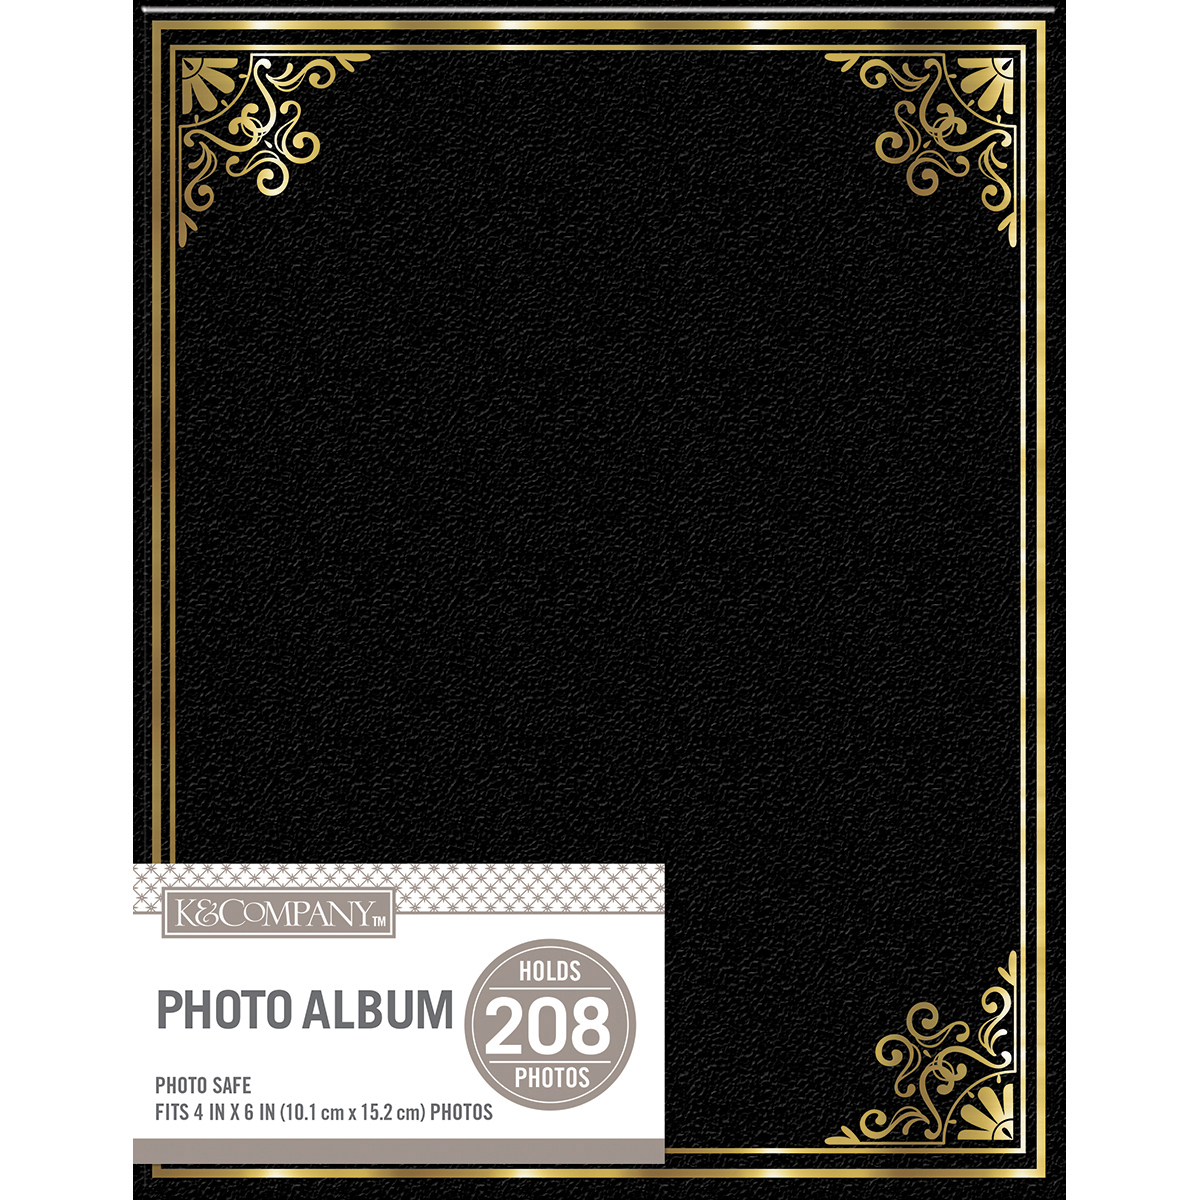 K&Company 2 Up Basic Photo Album 9X7-Black